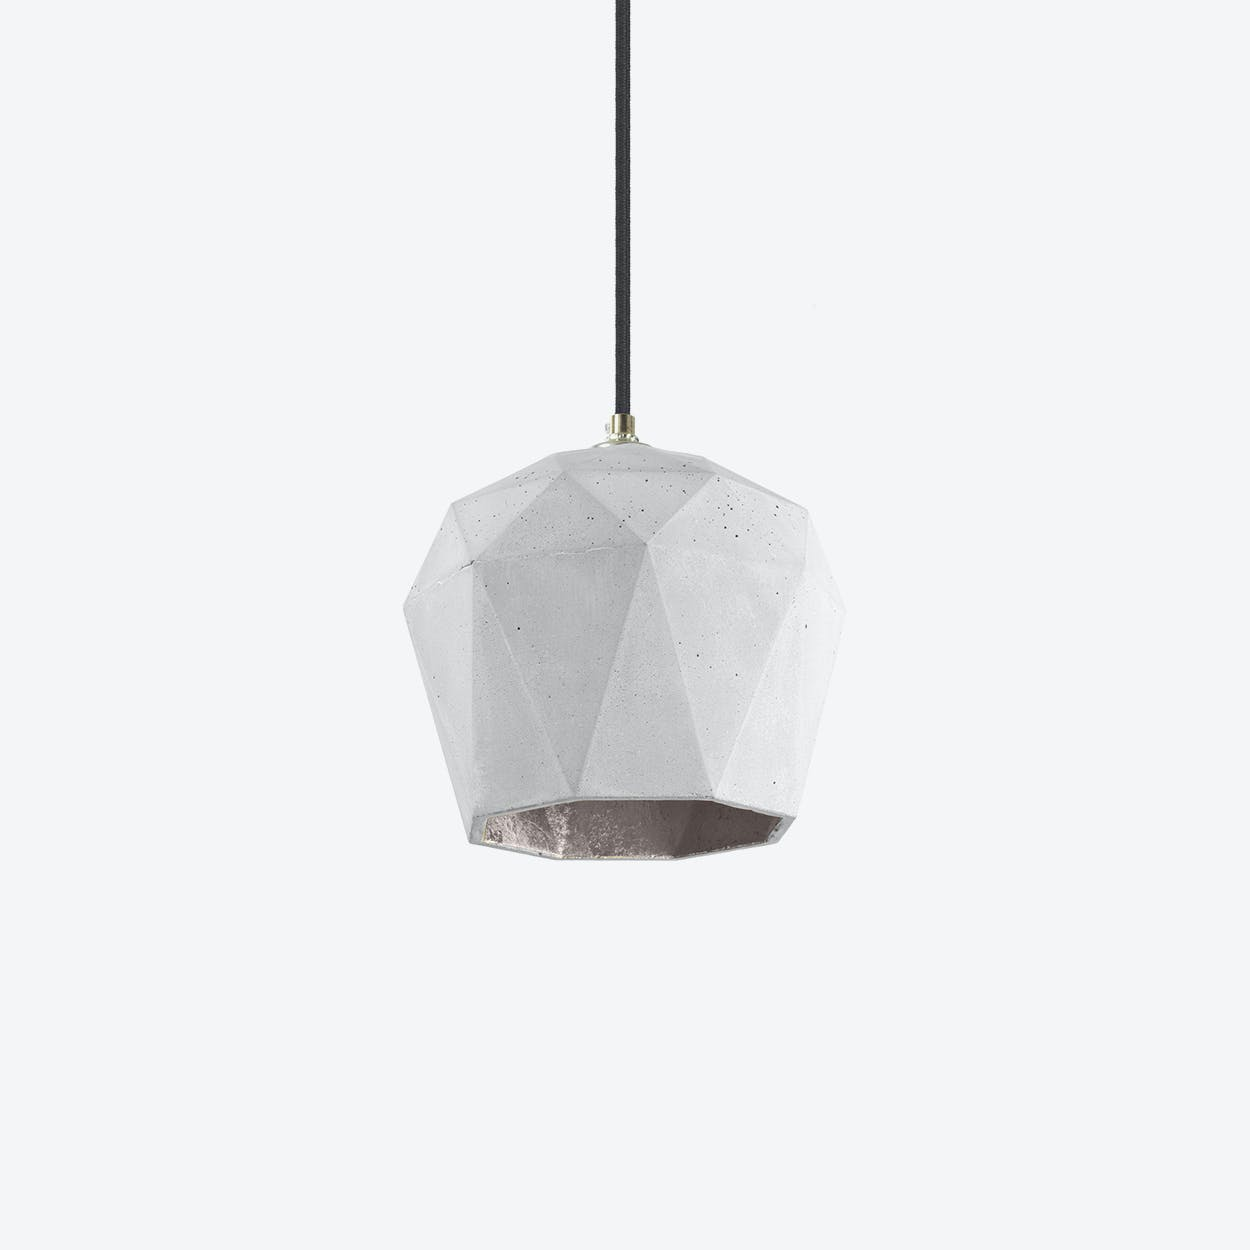 Concrete Pendant Light Triangle T3 in Light Grey and Silver